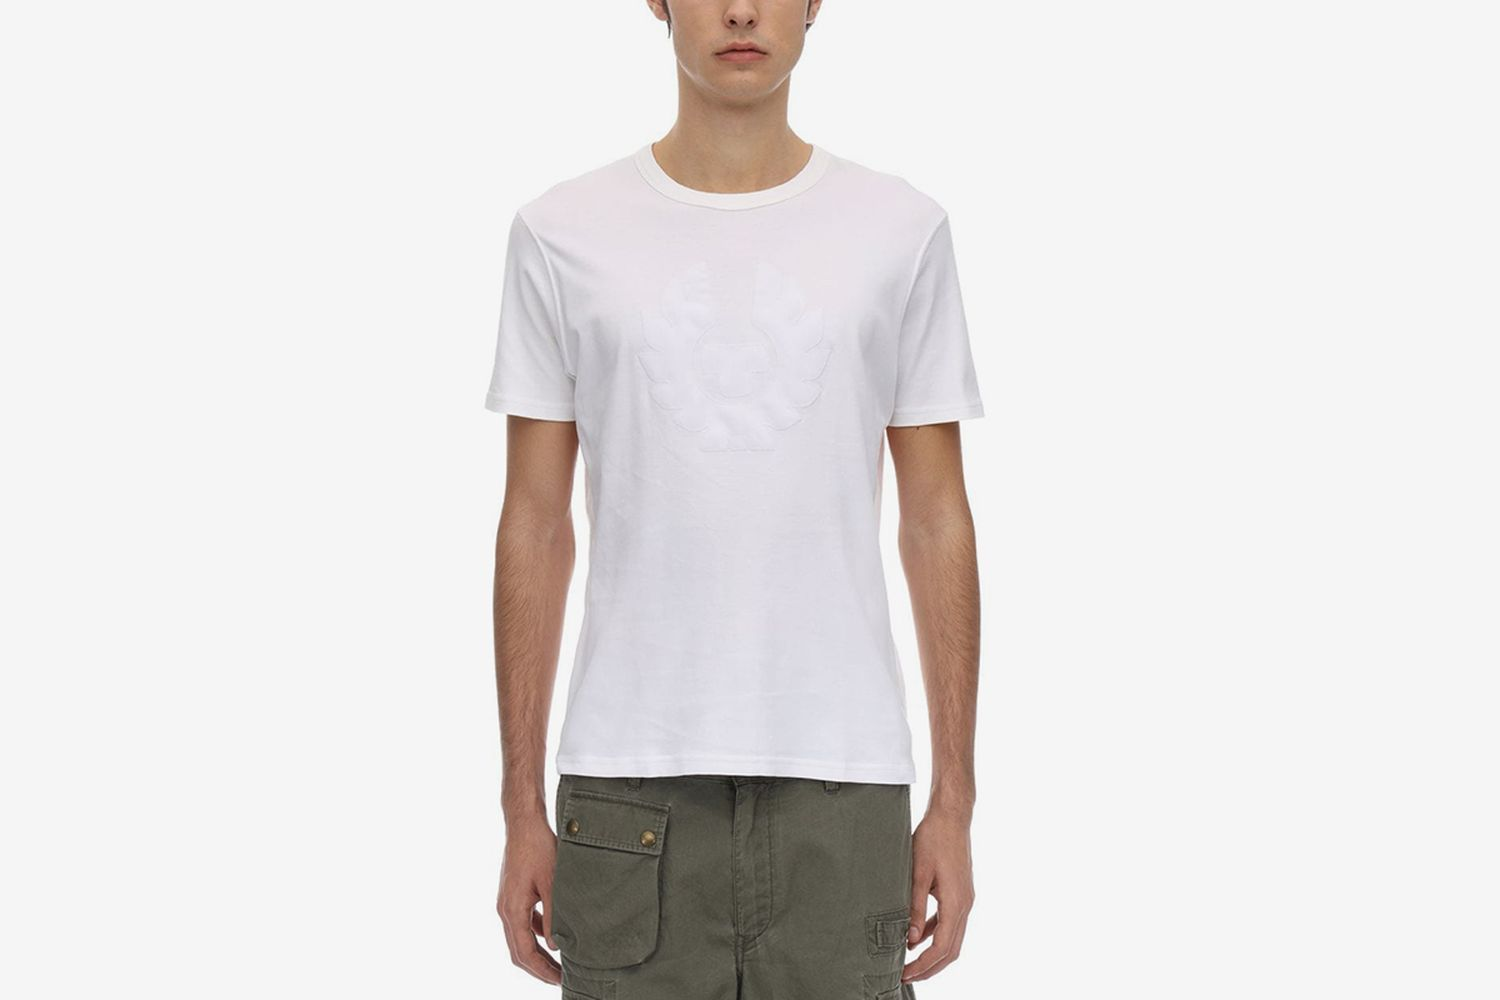 Phoenix Cotton Interlock T-Shirt